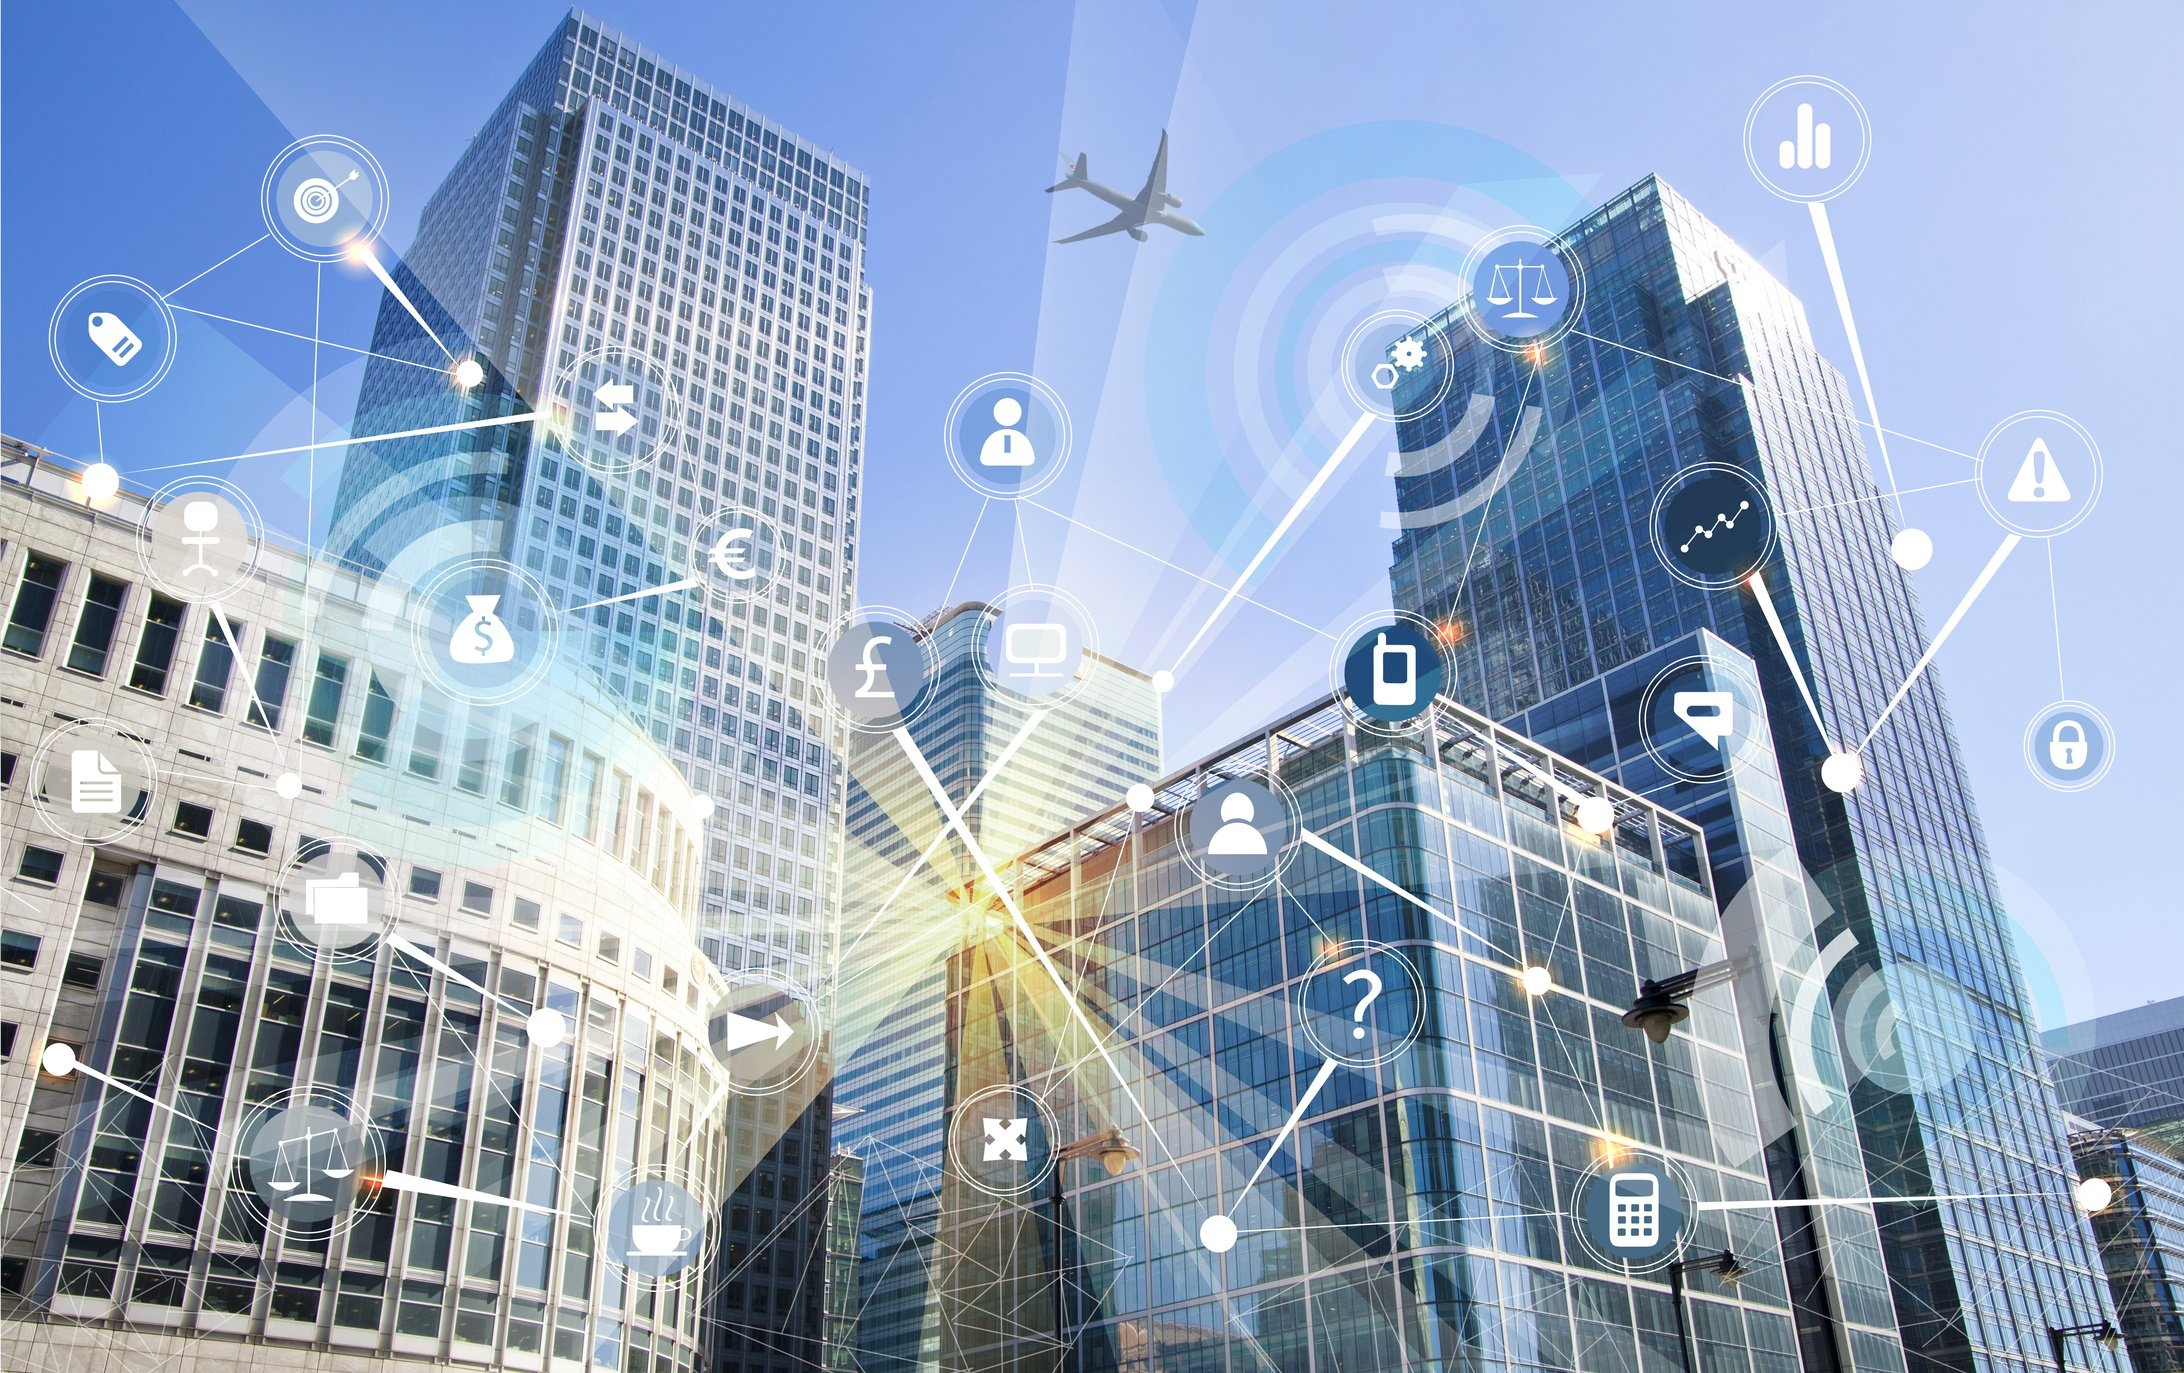 Modern-skyscrapers-of--Canary-Wharf-and-business-network-connections.-Illustration-made-with-many-communication-icons.-Technology,-transformation-and-innovation-idea.-861004590_2188x1375